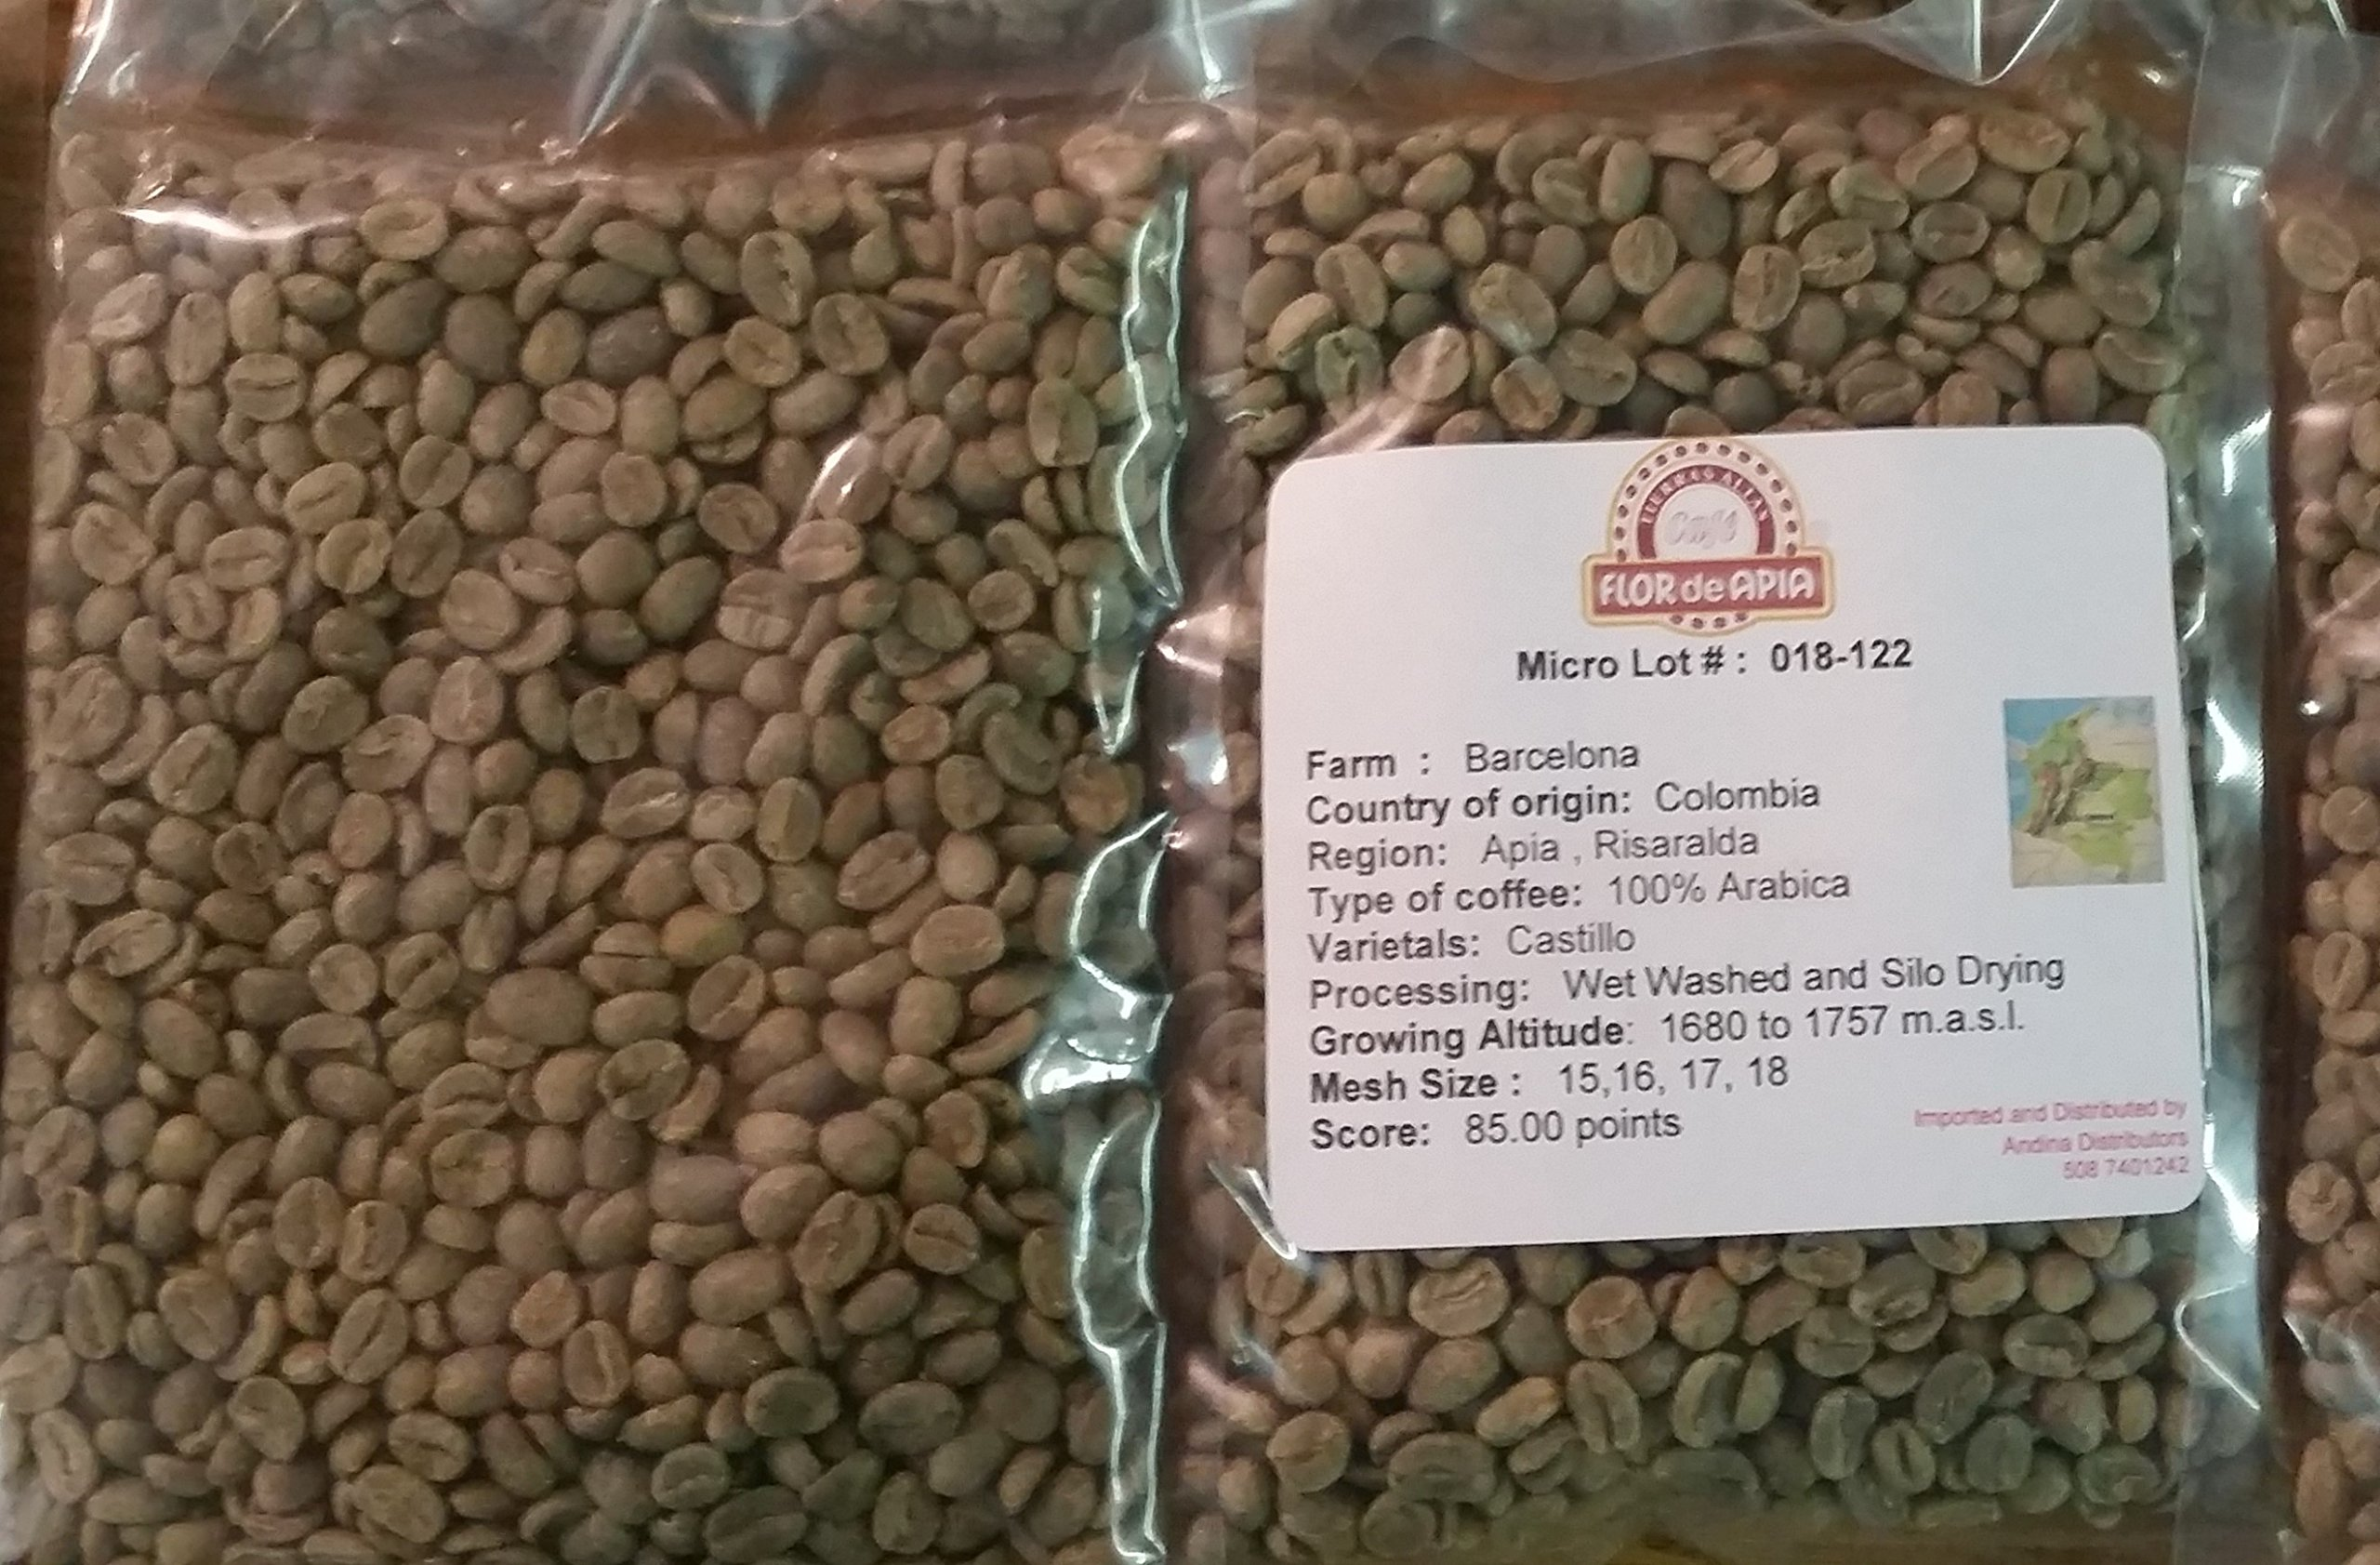 Colombian Green Unroasted Coffee Beans 3- Pounds Single Origin Farm - Barcelona by Flor de Apia